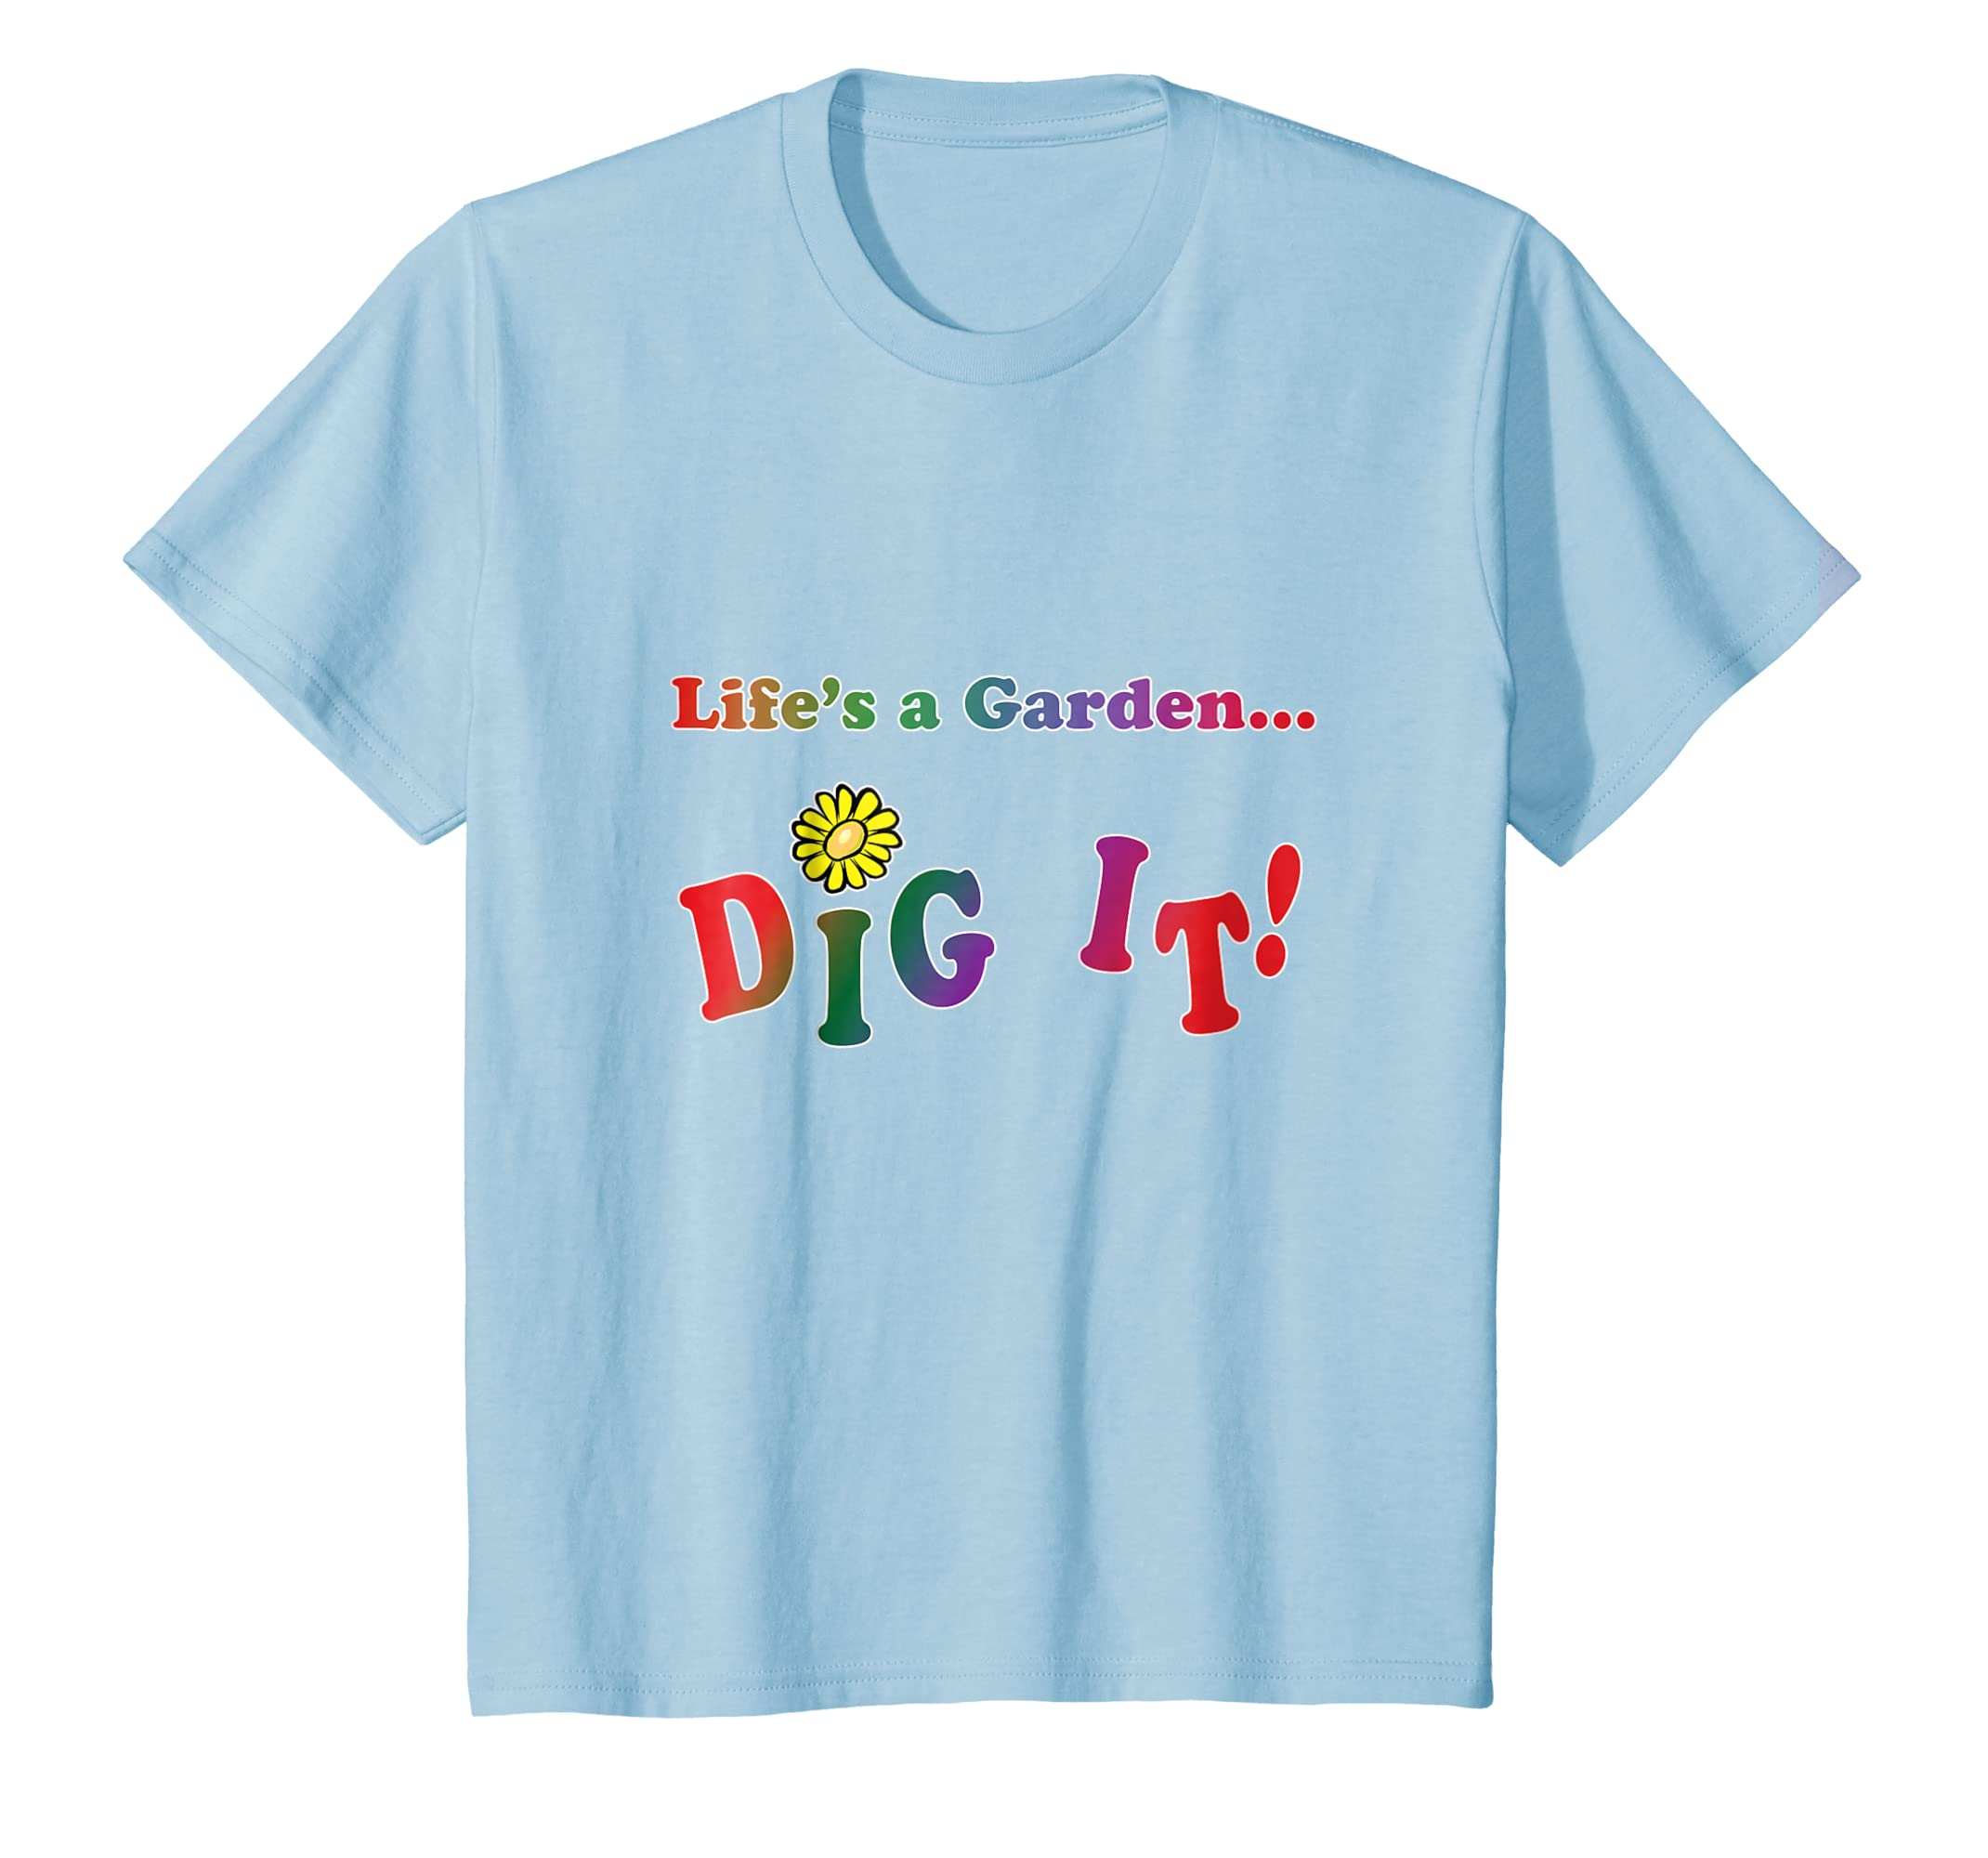 2323347af Amazon.com: TerraShirts: Life's a Garden Dig It T-Shirt: Clothing